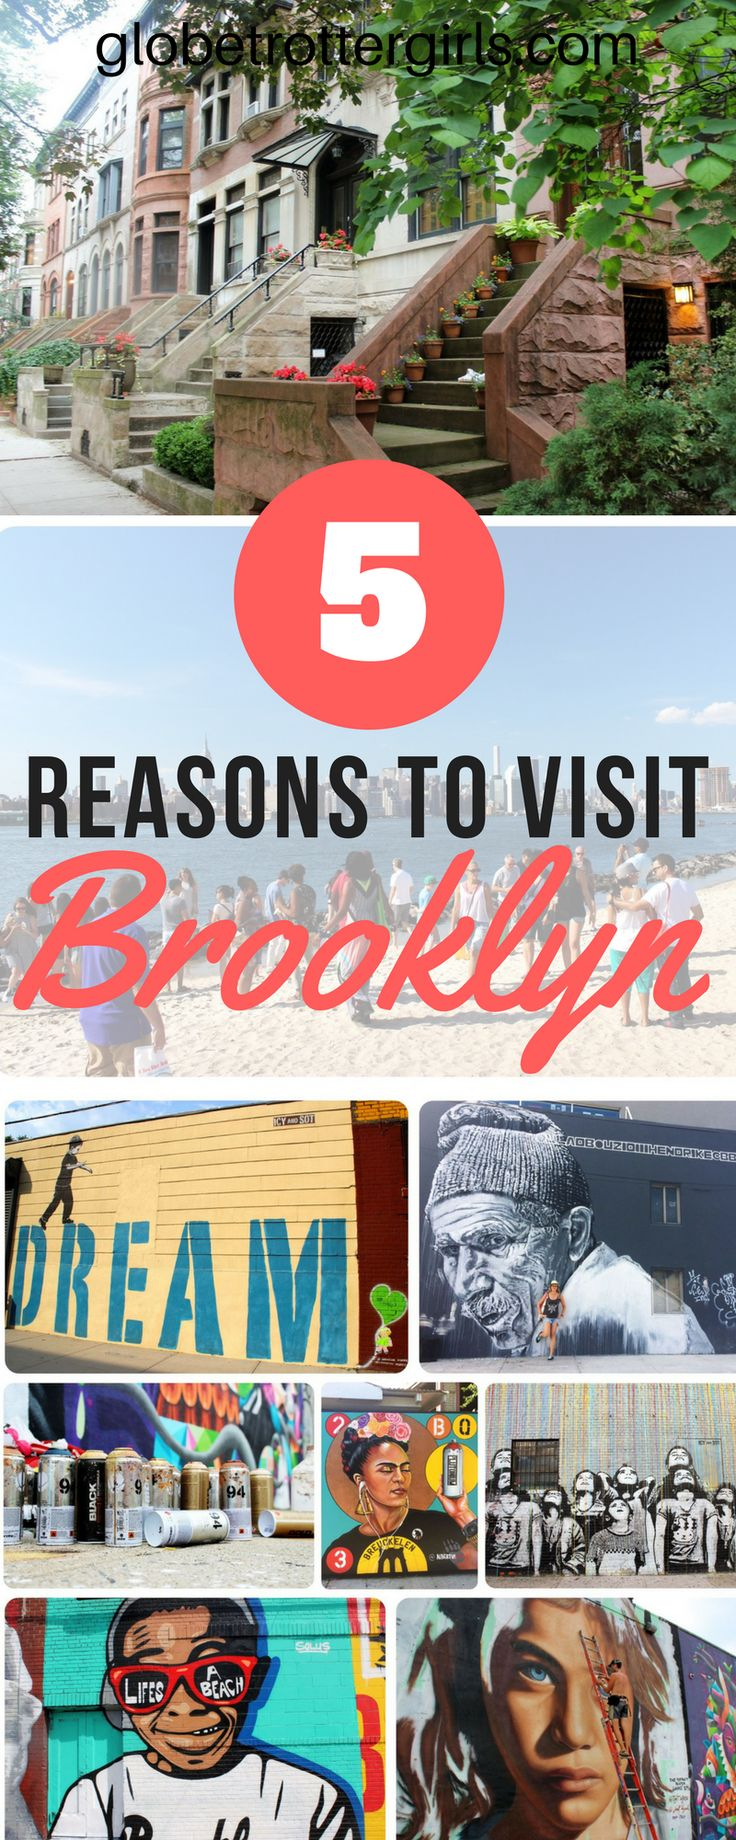 Five Reasons to Spend a Day in Brooklyn on a Visit to New York. It wasn't Manhattan that made me fall for New York – it was Brooklyn that made me fall in love with the 'Big Apple' - because there are so many different neighborhoods to see, cool spots to stumble upon and hidden gems to discover. Brooklyn is a must visit on any trip to New York City. | Globetrotter Girls